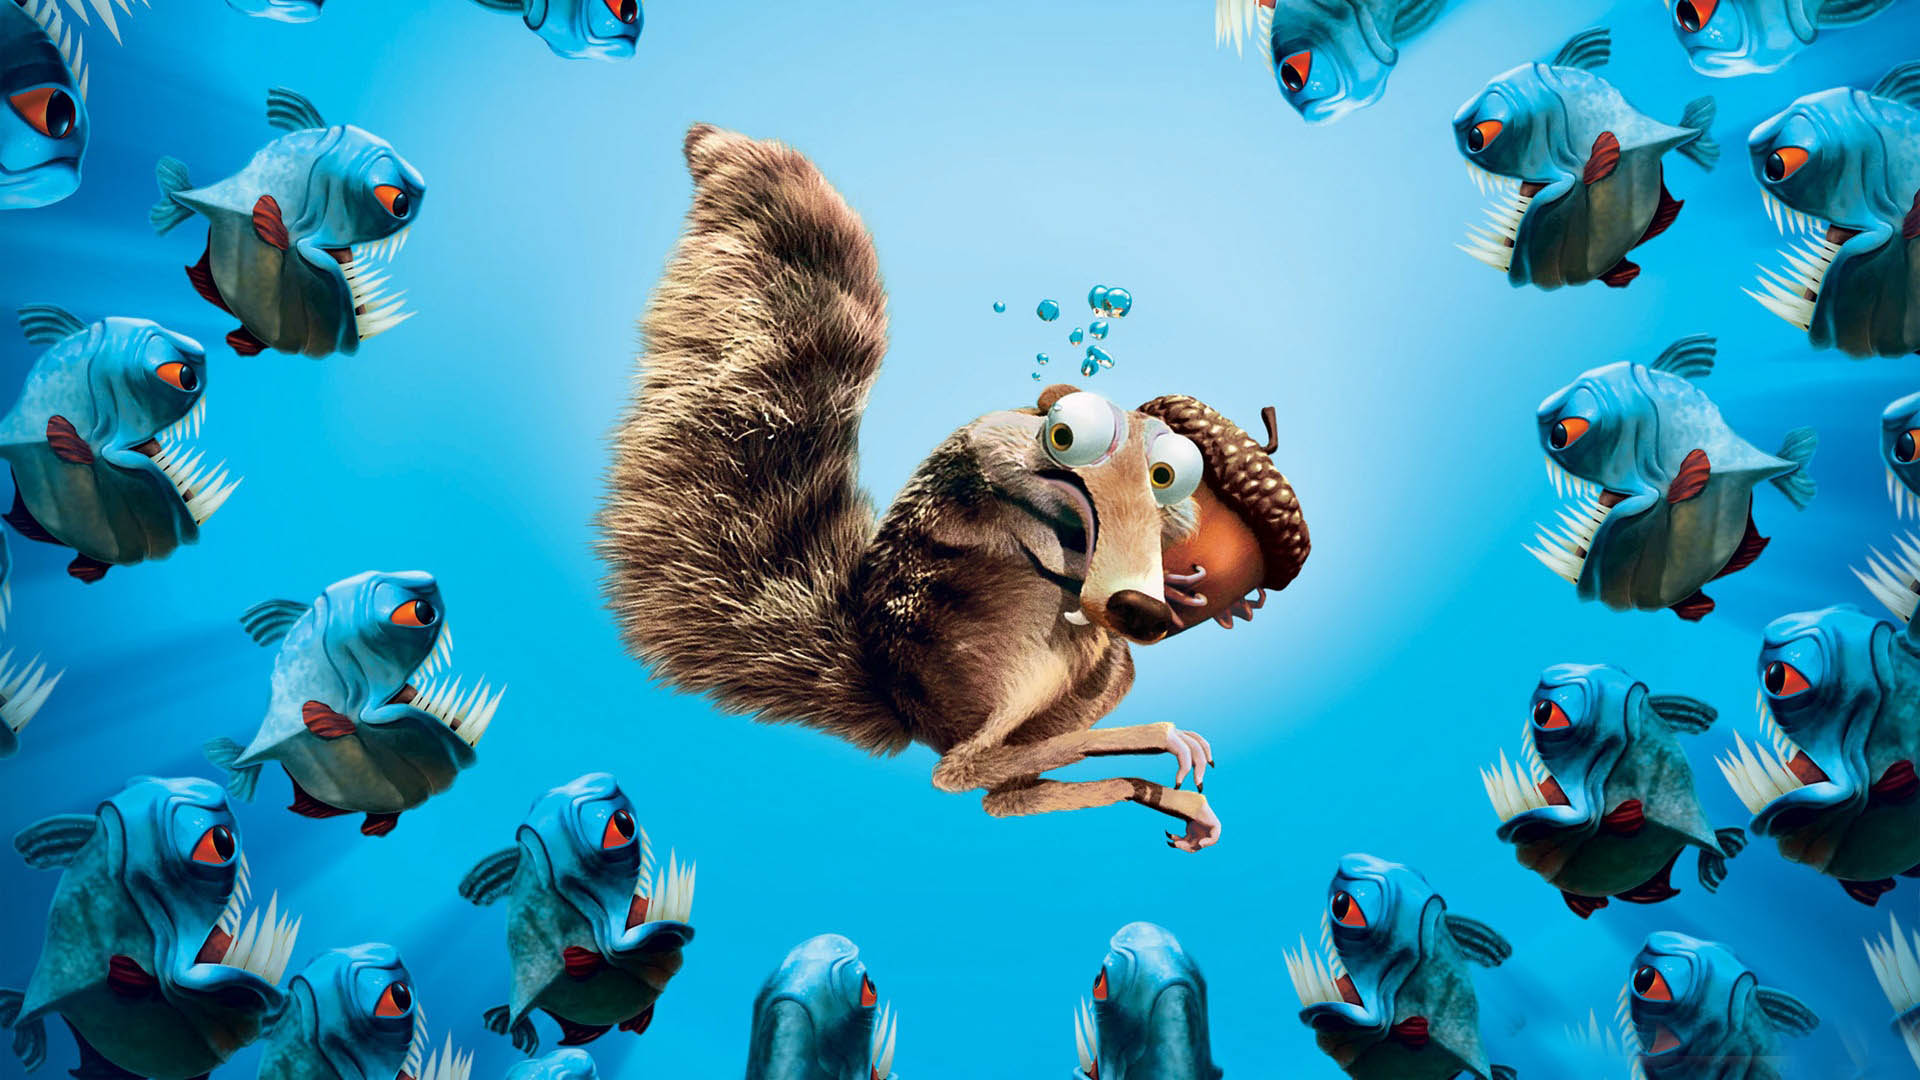 HQ Ice Age: The Meltdown Wallpapers | File 264.67Kb